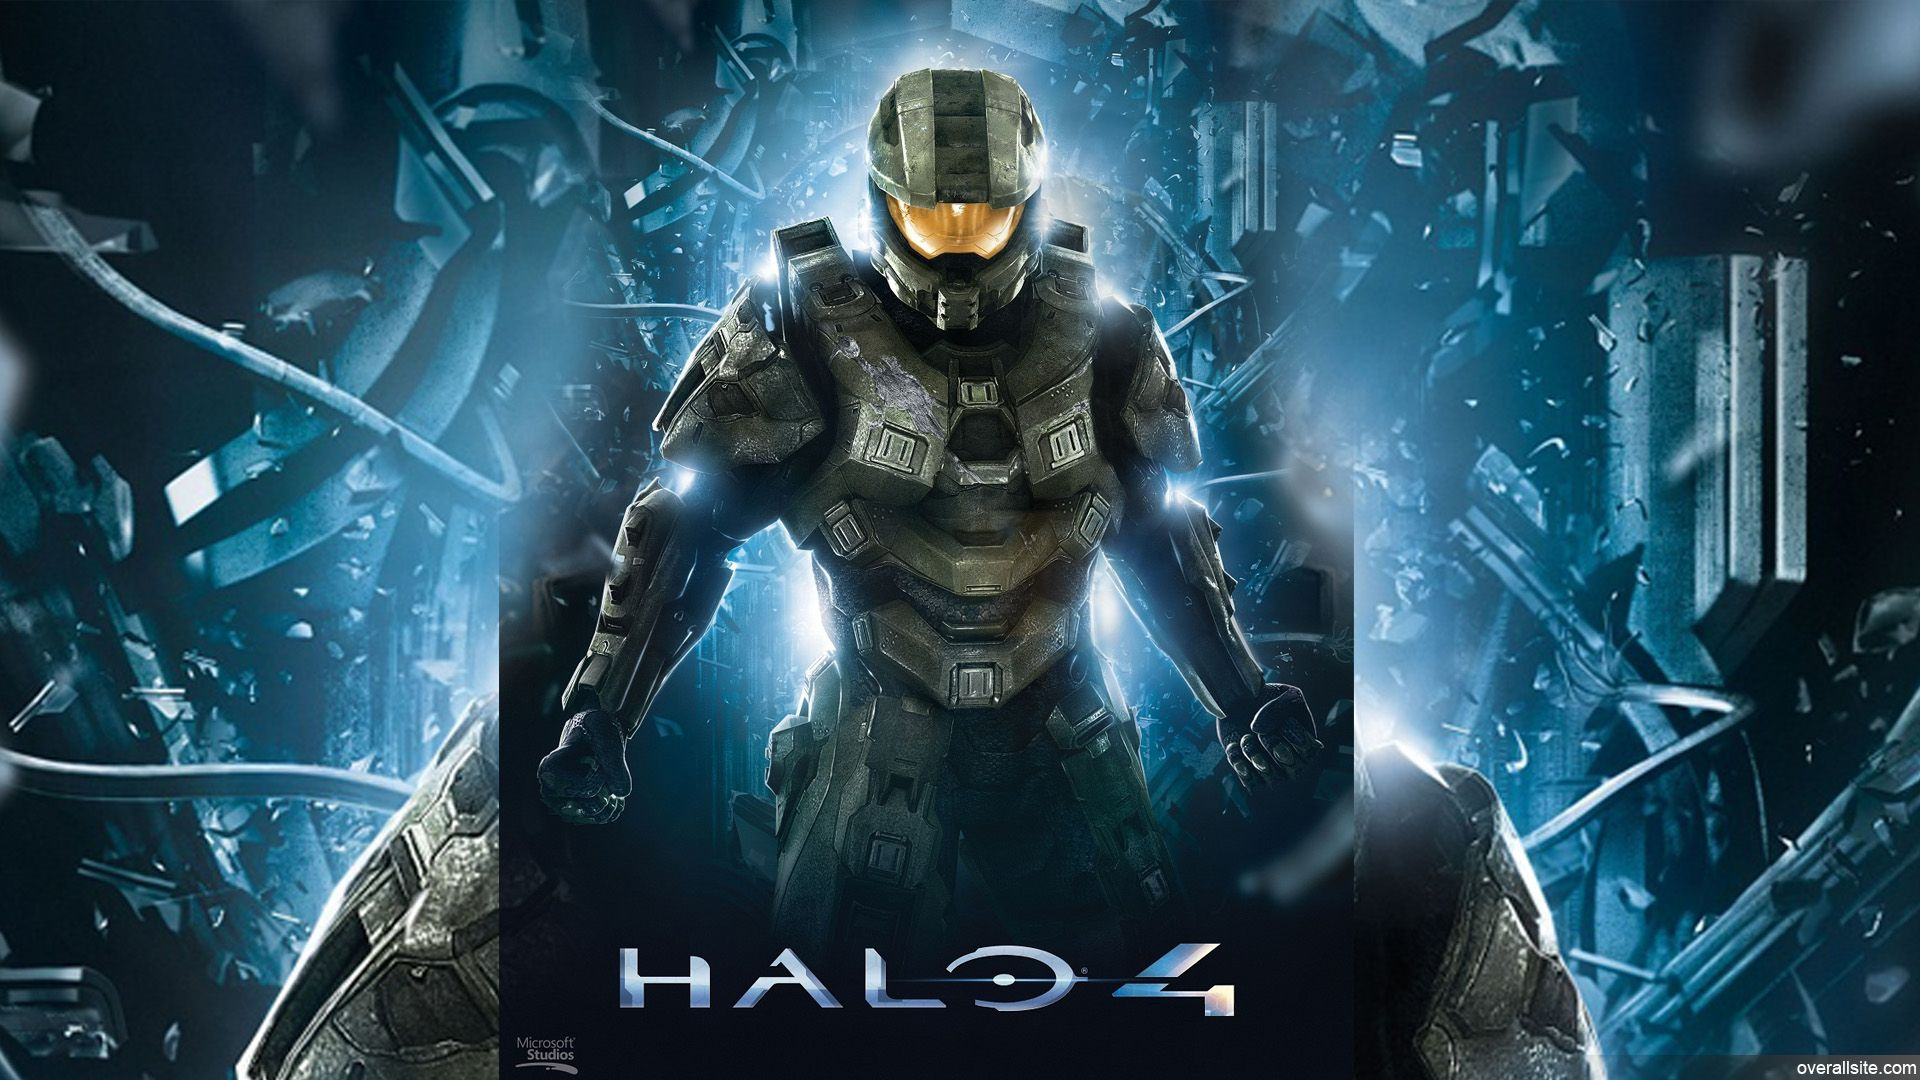 Halo 4 video games wallpapers hd httpwalluckyhalo 4 video halo 4 video games wallpapers hd httpwalluckyhalo voltagebd Image collections